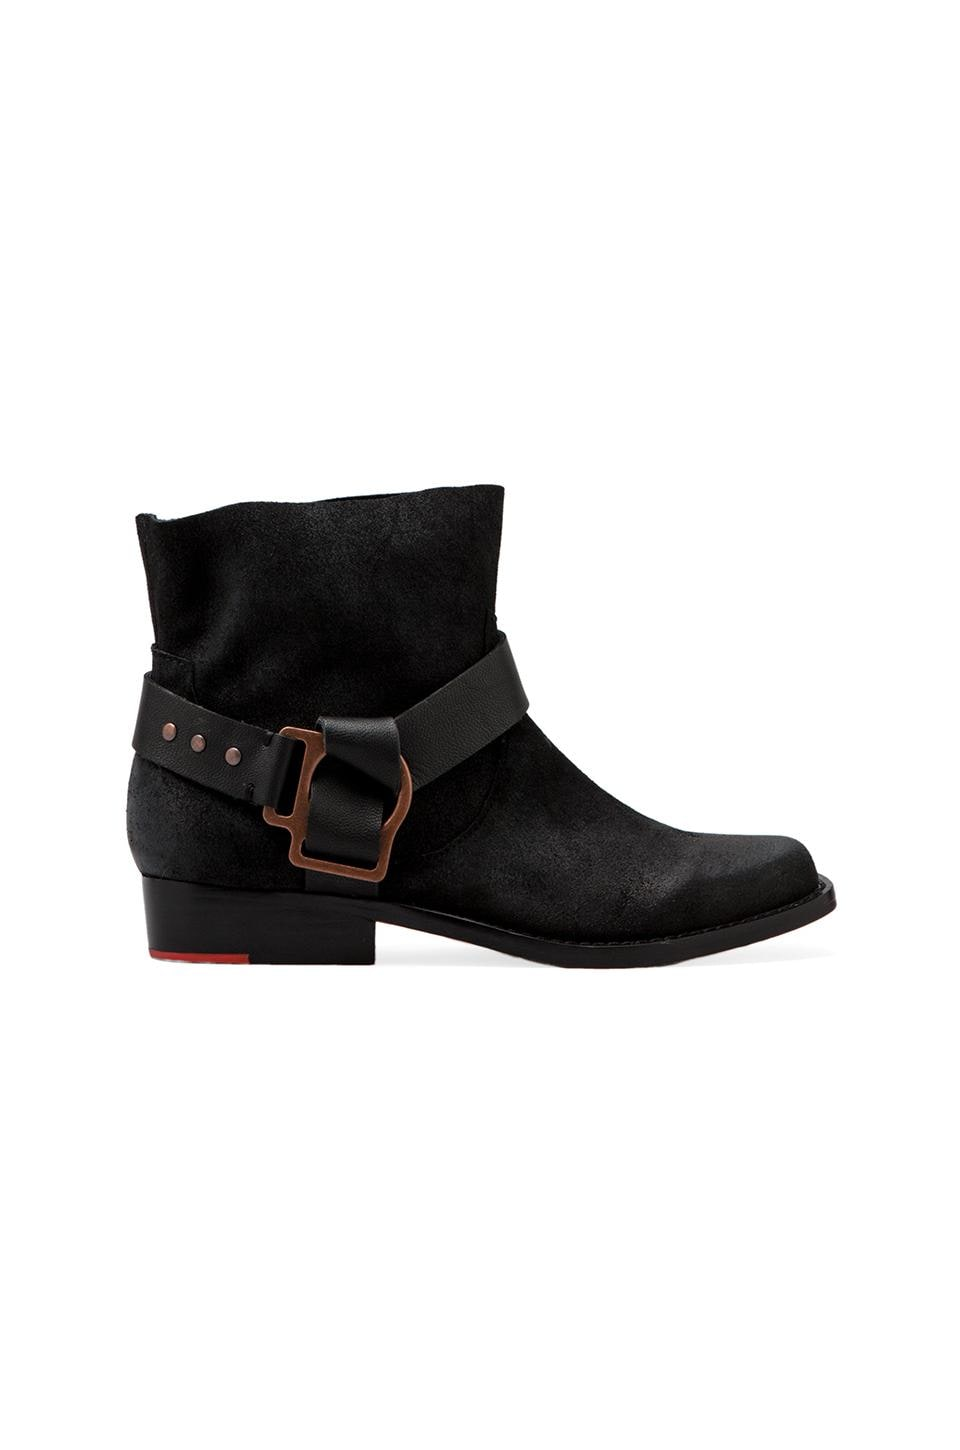 Joe's Jeans Saki Bootie with a Buckle in Black